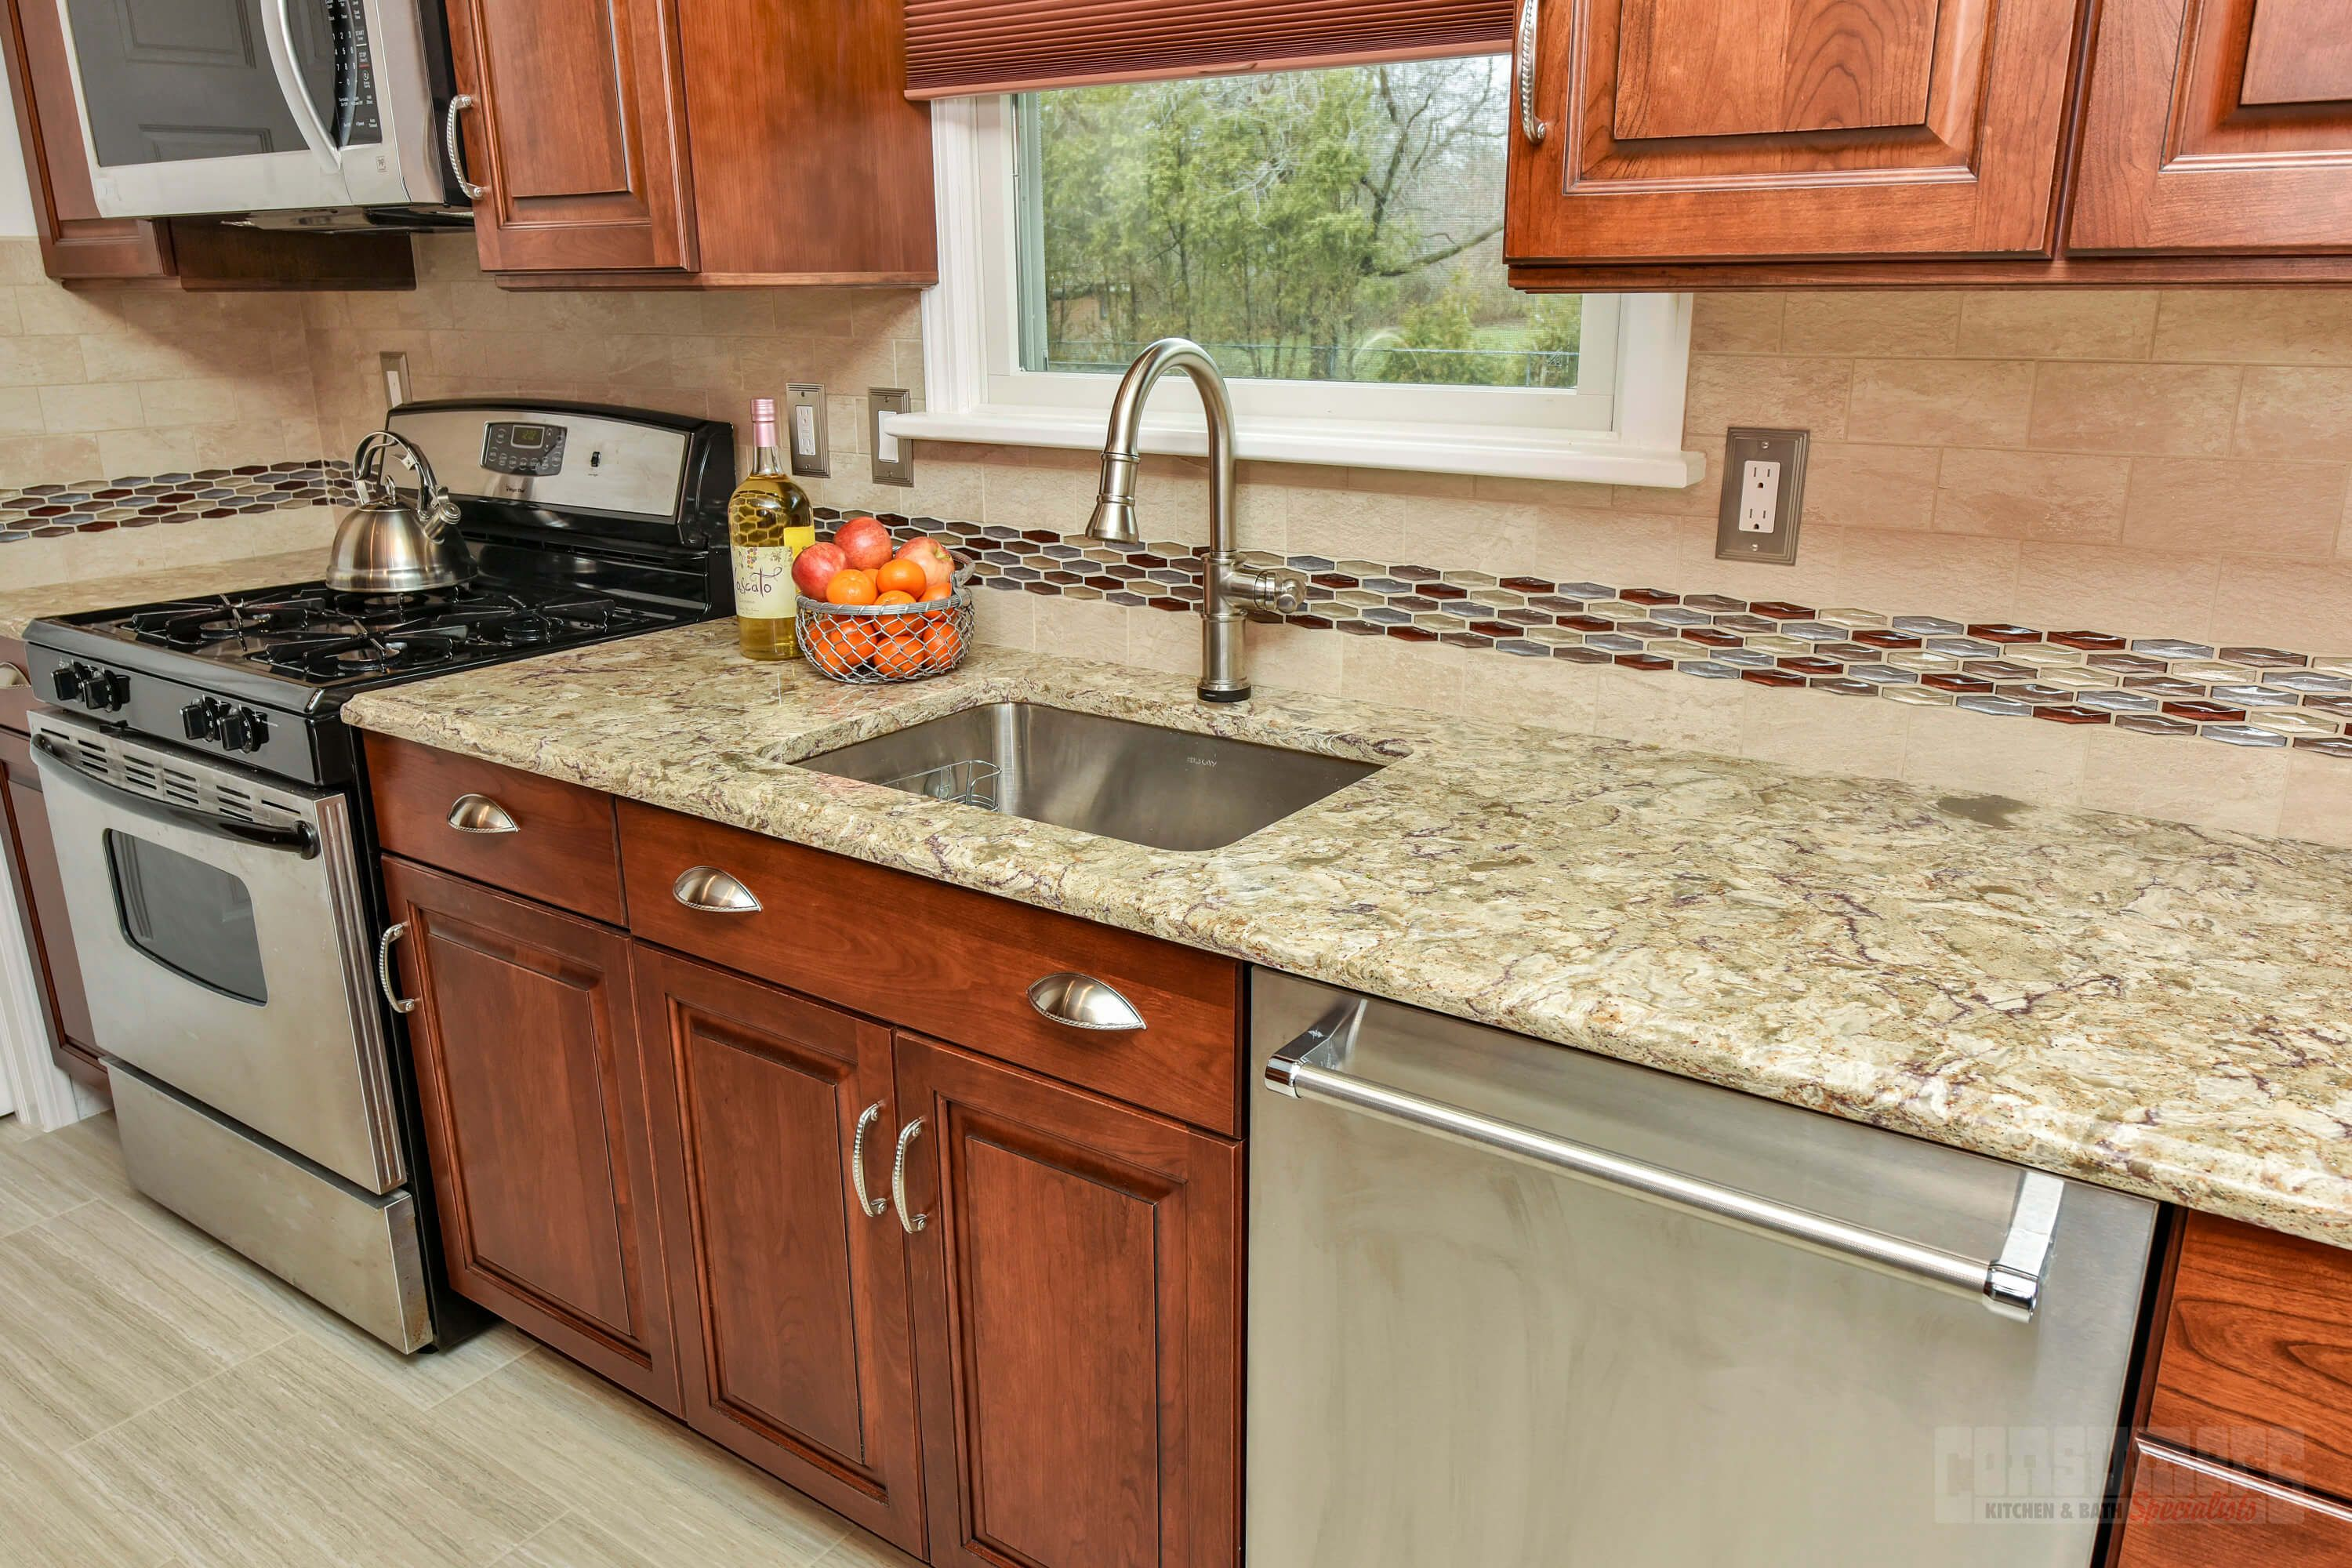 Greenlawn Galley - Consumers Kitchen Showcase Design - Long Island